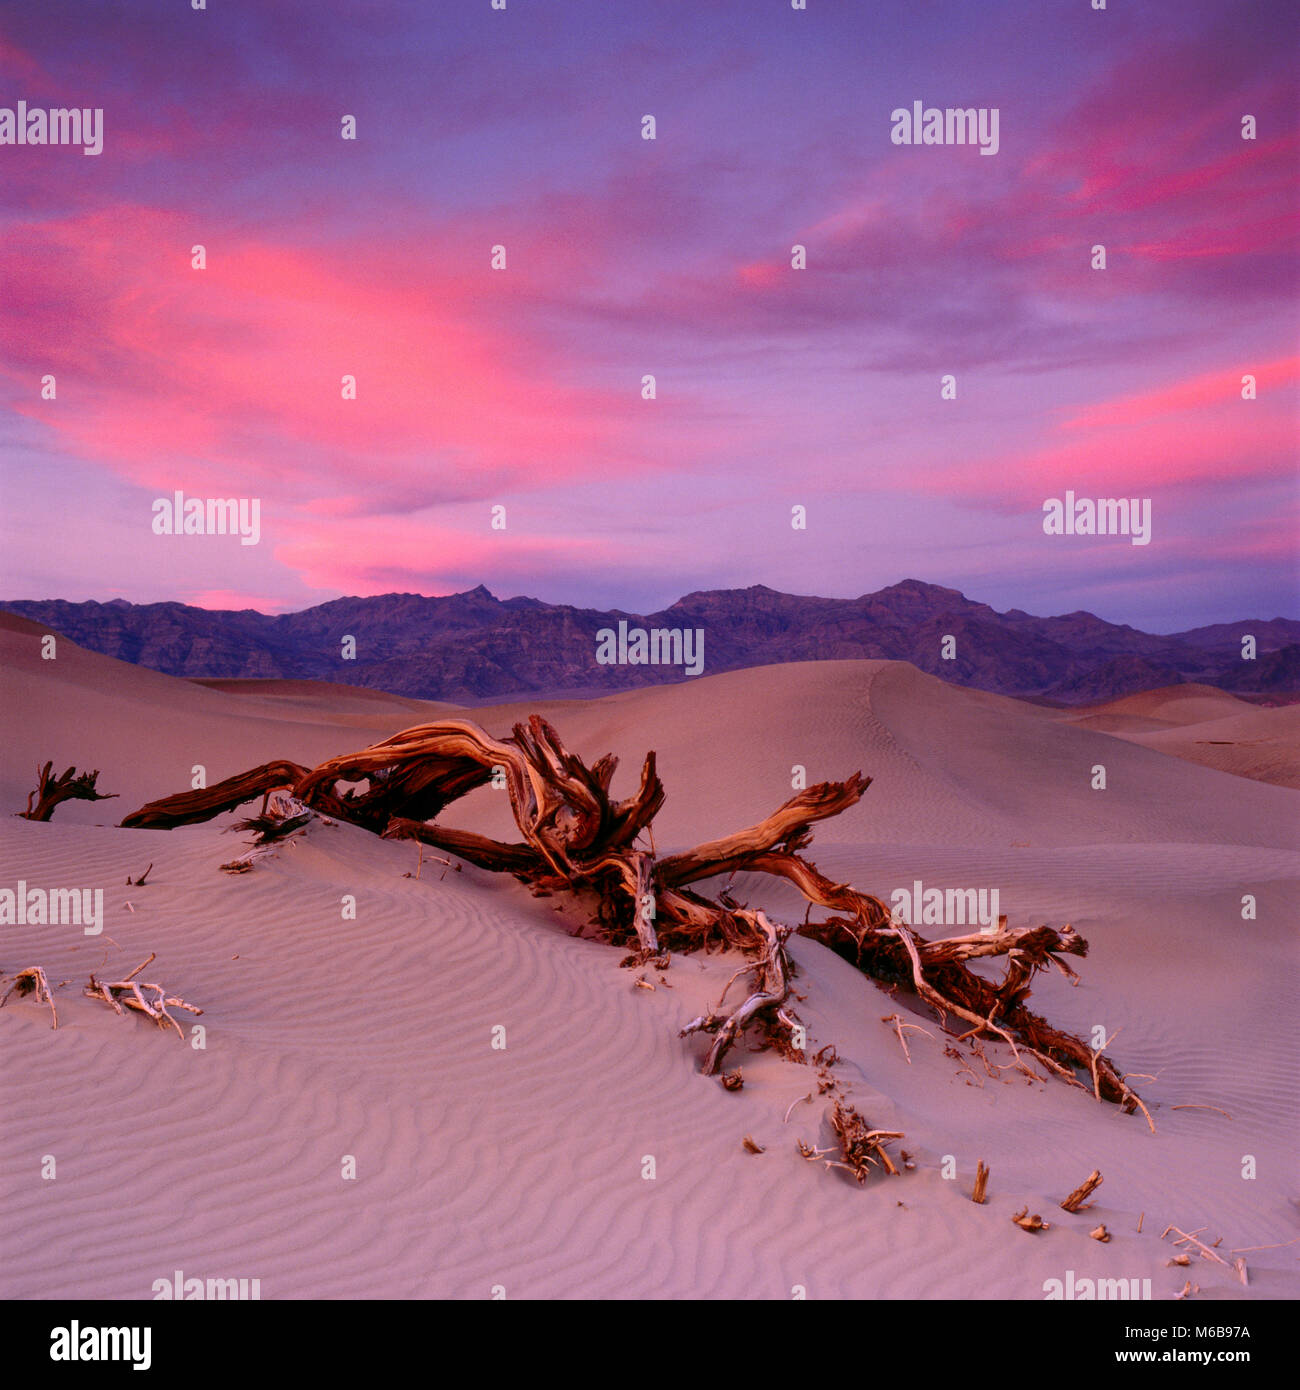 Sunset, Tamarisk, Dunes, Grapevine Mountains, Death Valley National Park, California - Stock Image